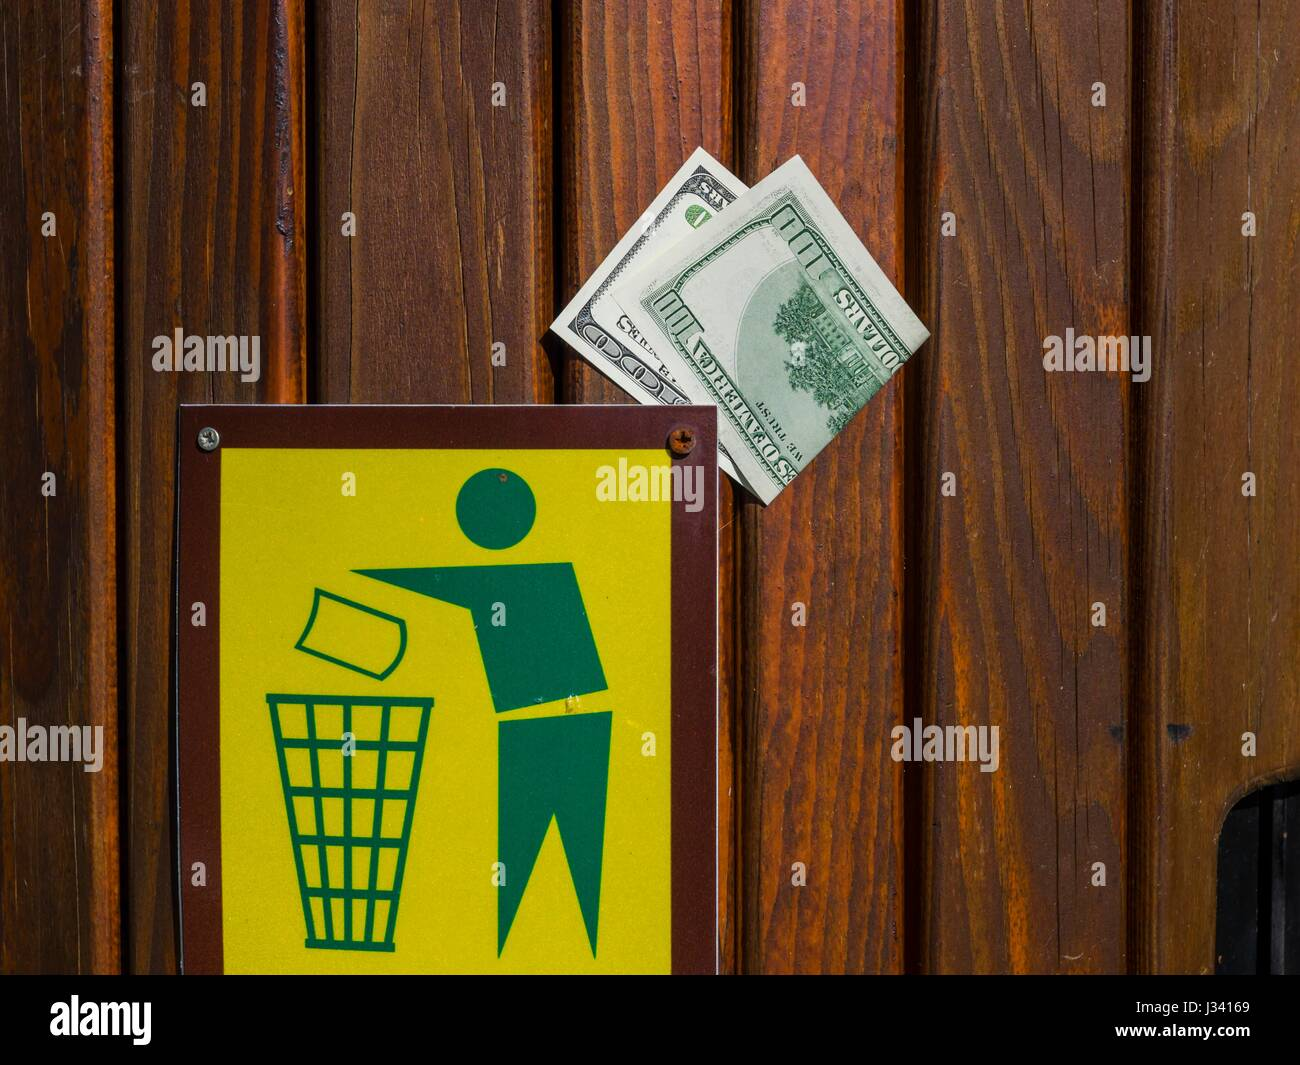 Natural environmental issues cost money, throw thrown-away discarded discard value , valuable valuables - Stock Image